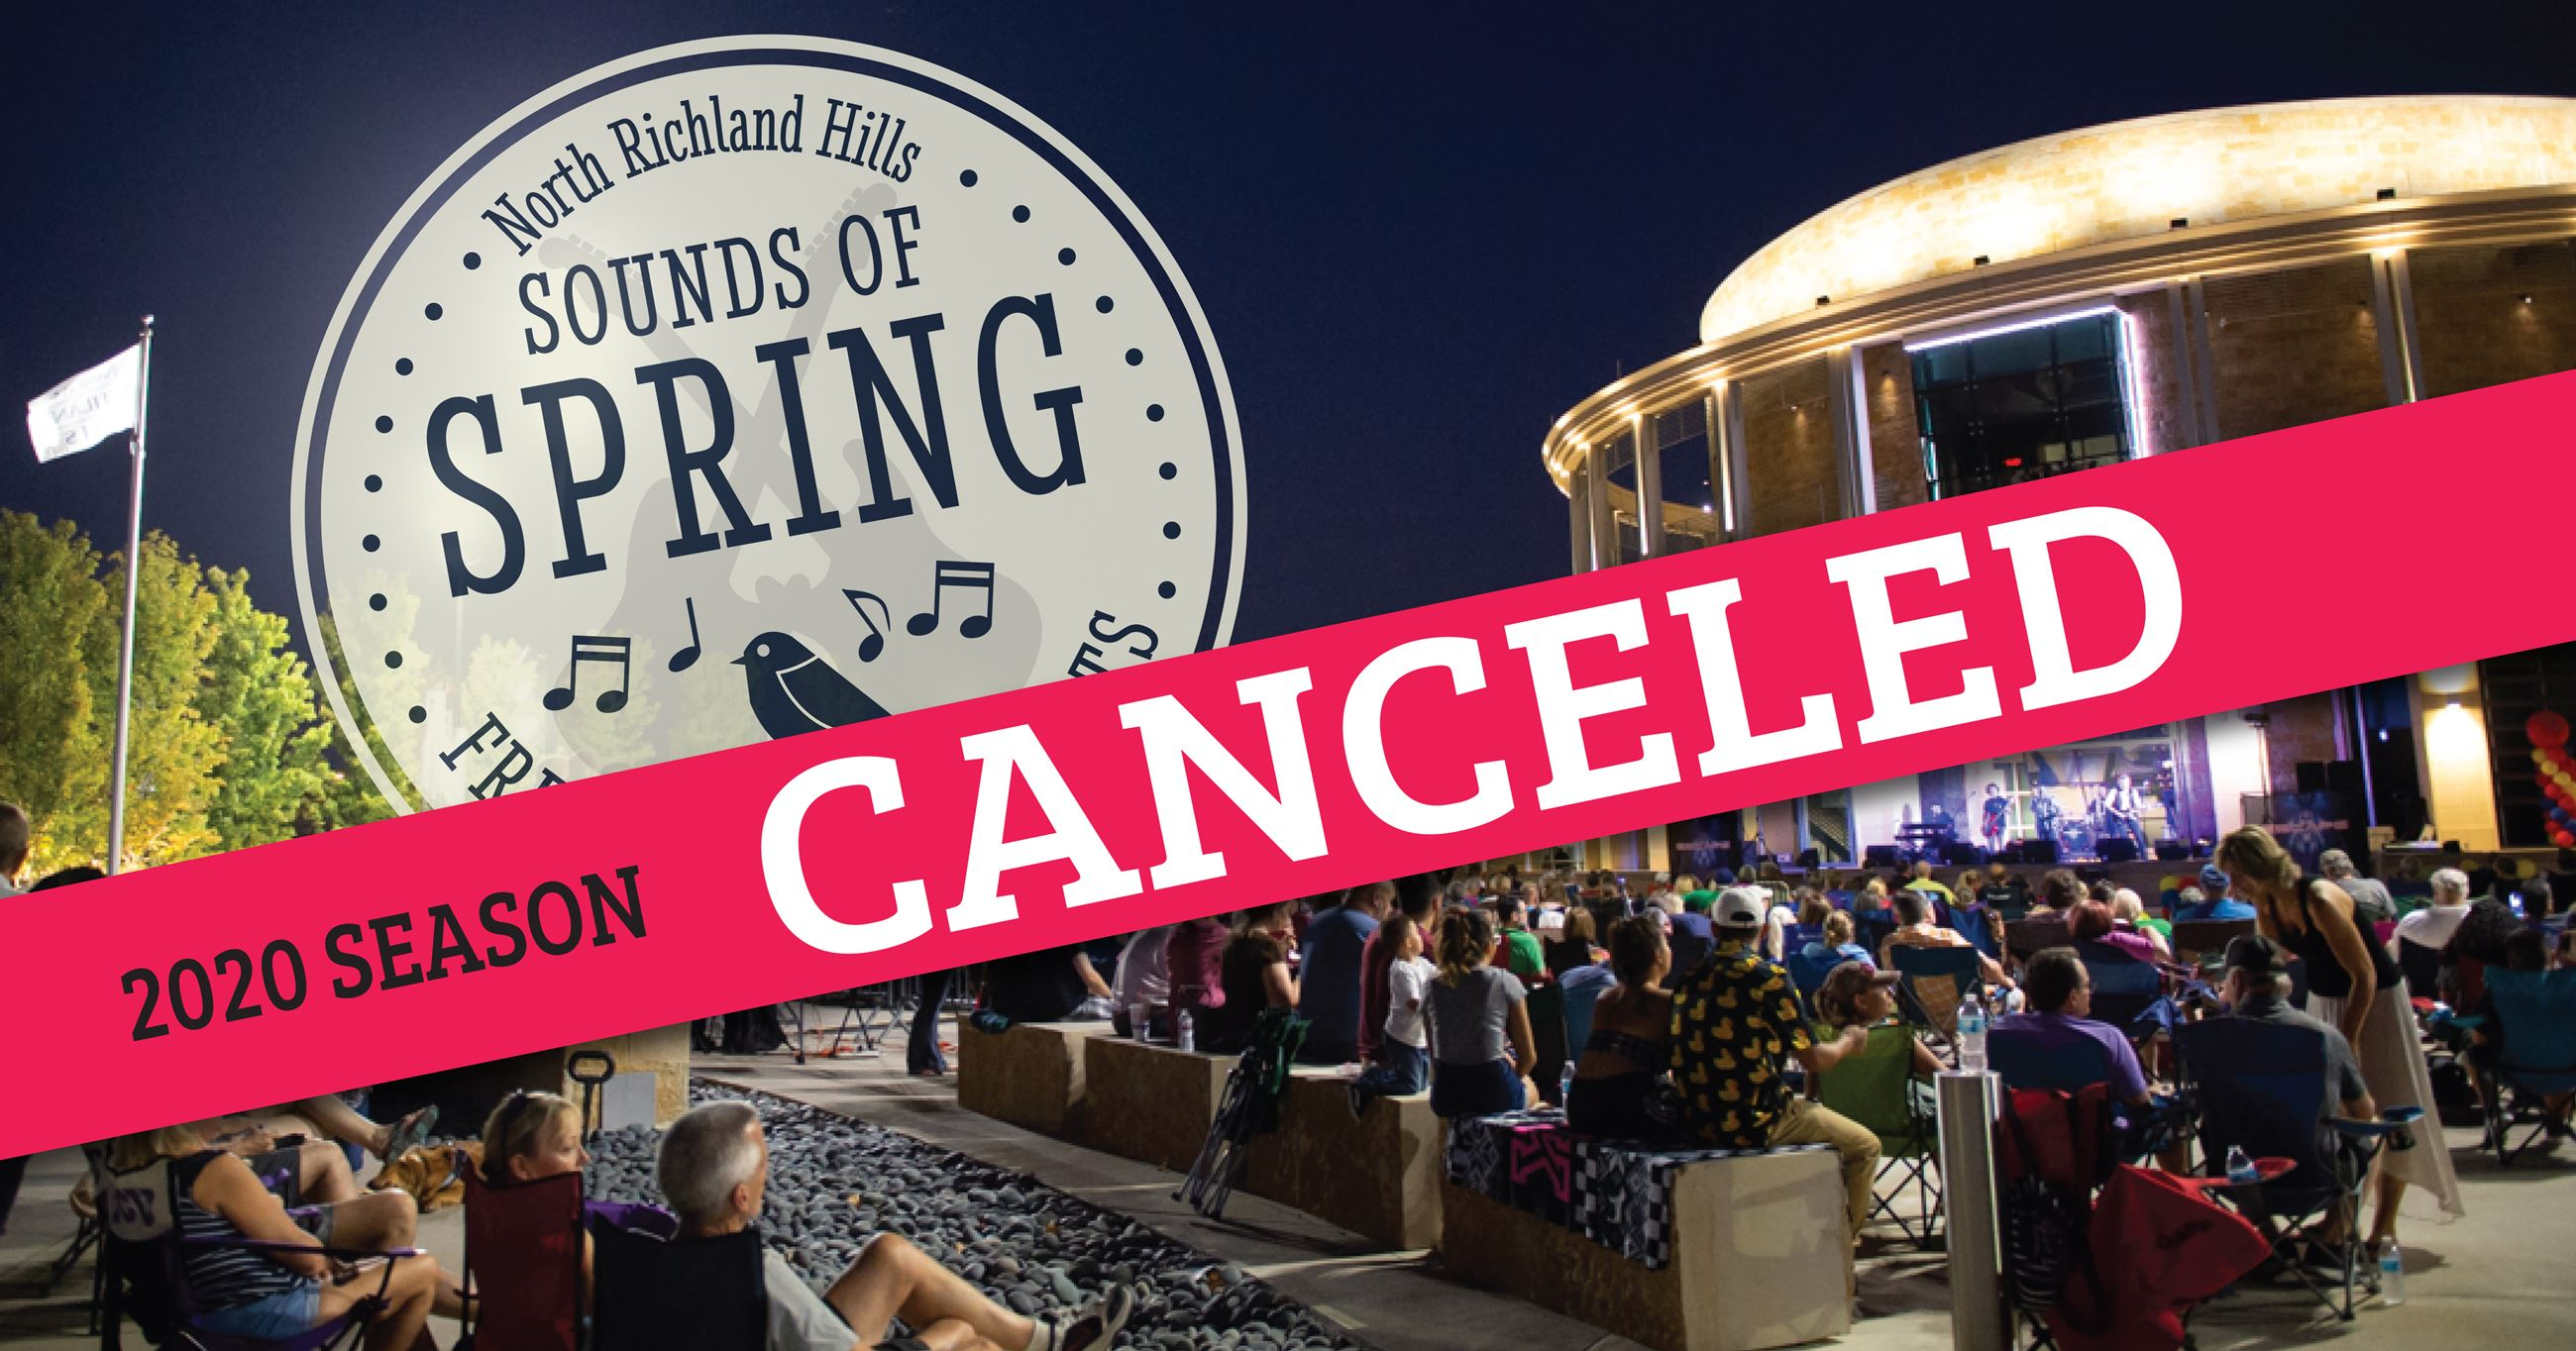 Sounds of Spring Cancelled